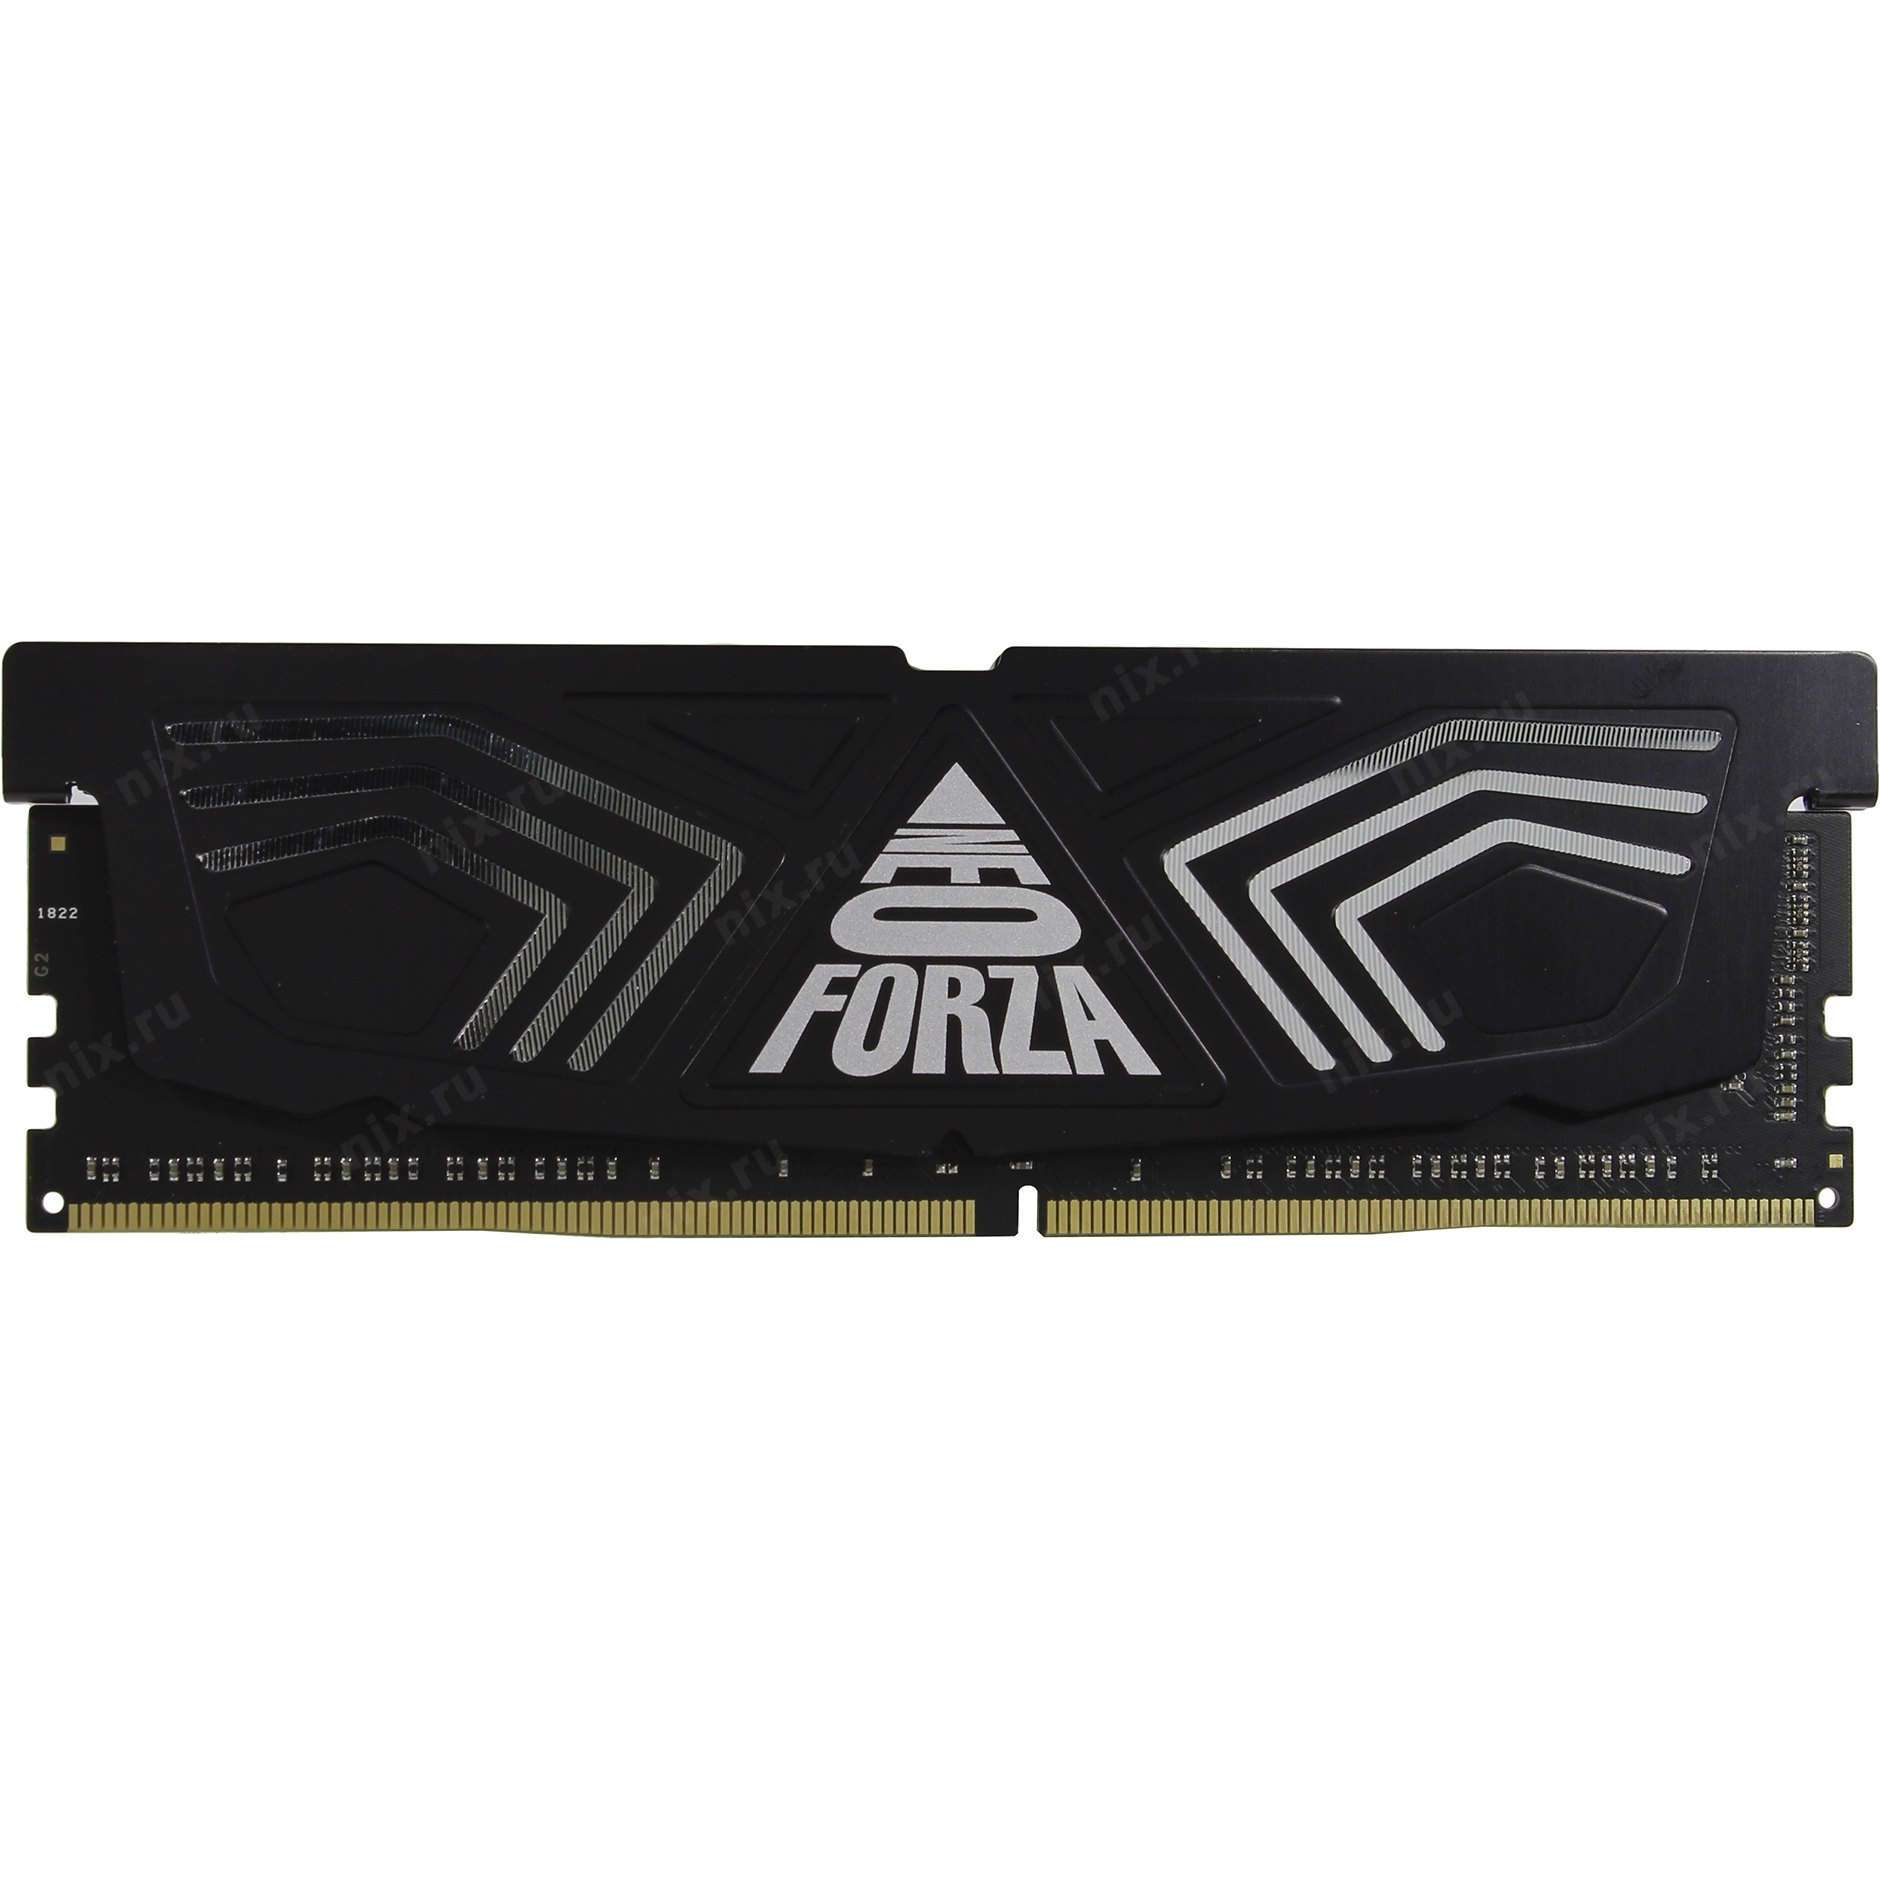 NEOFORZA 16GB 3000MHz DDR4 GAMING CL15 SOĞUTUCULU NMUD416E82-3000DB11 PC RAM